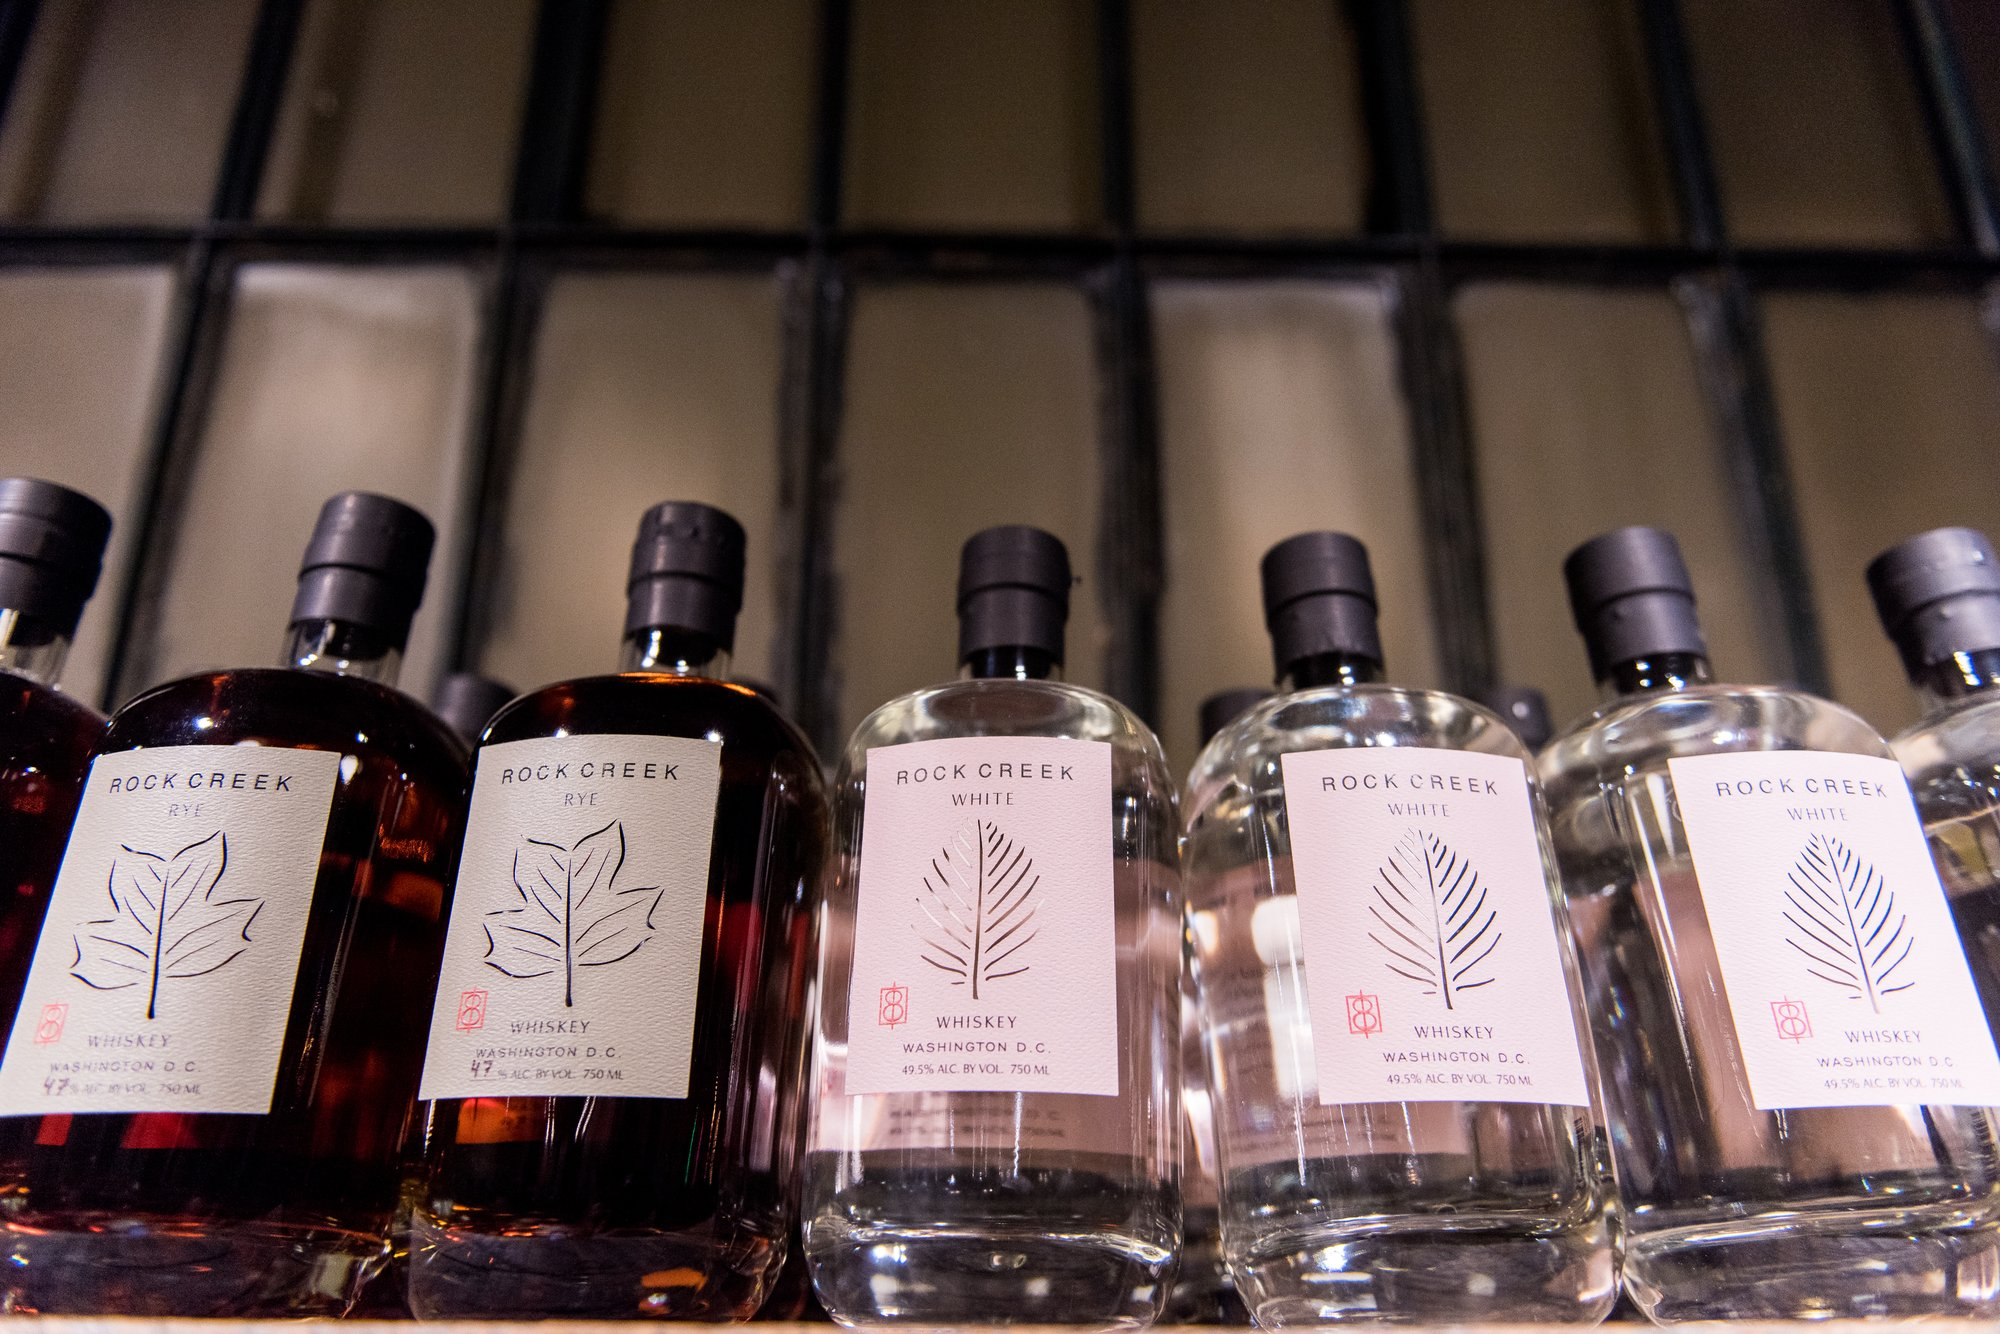 One Eight Distilling Whiskey and Rye made in Ivy City, Washington, DC